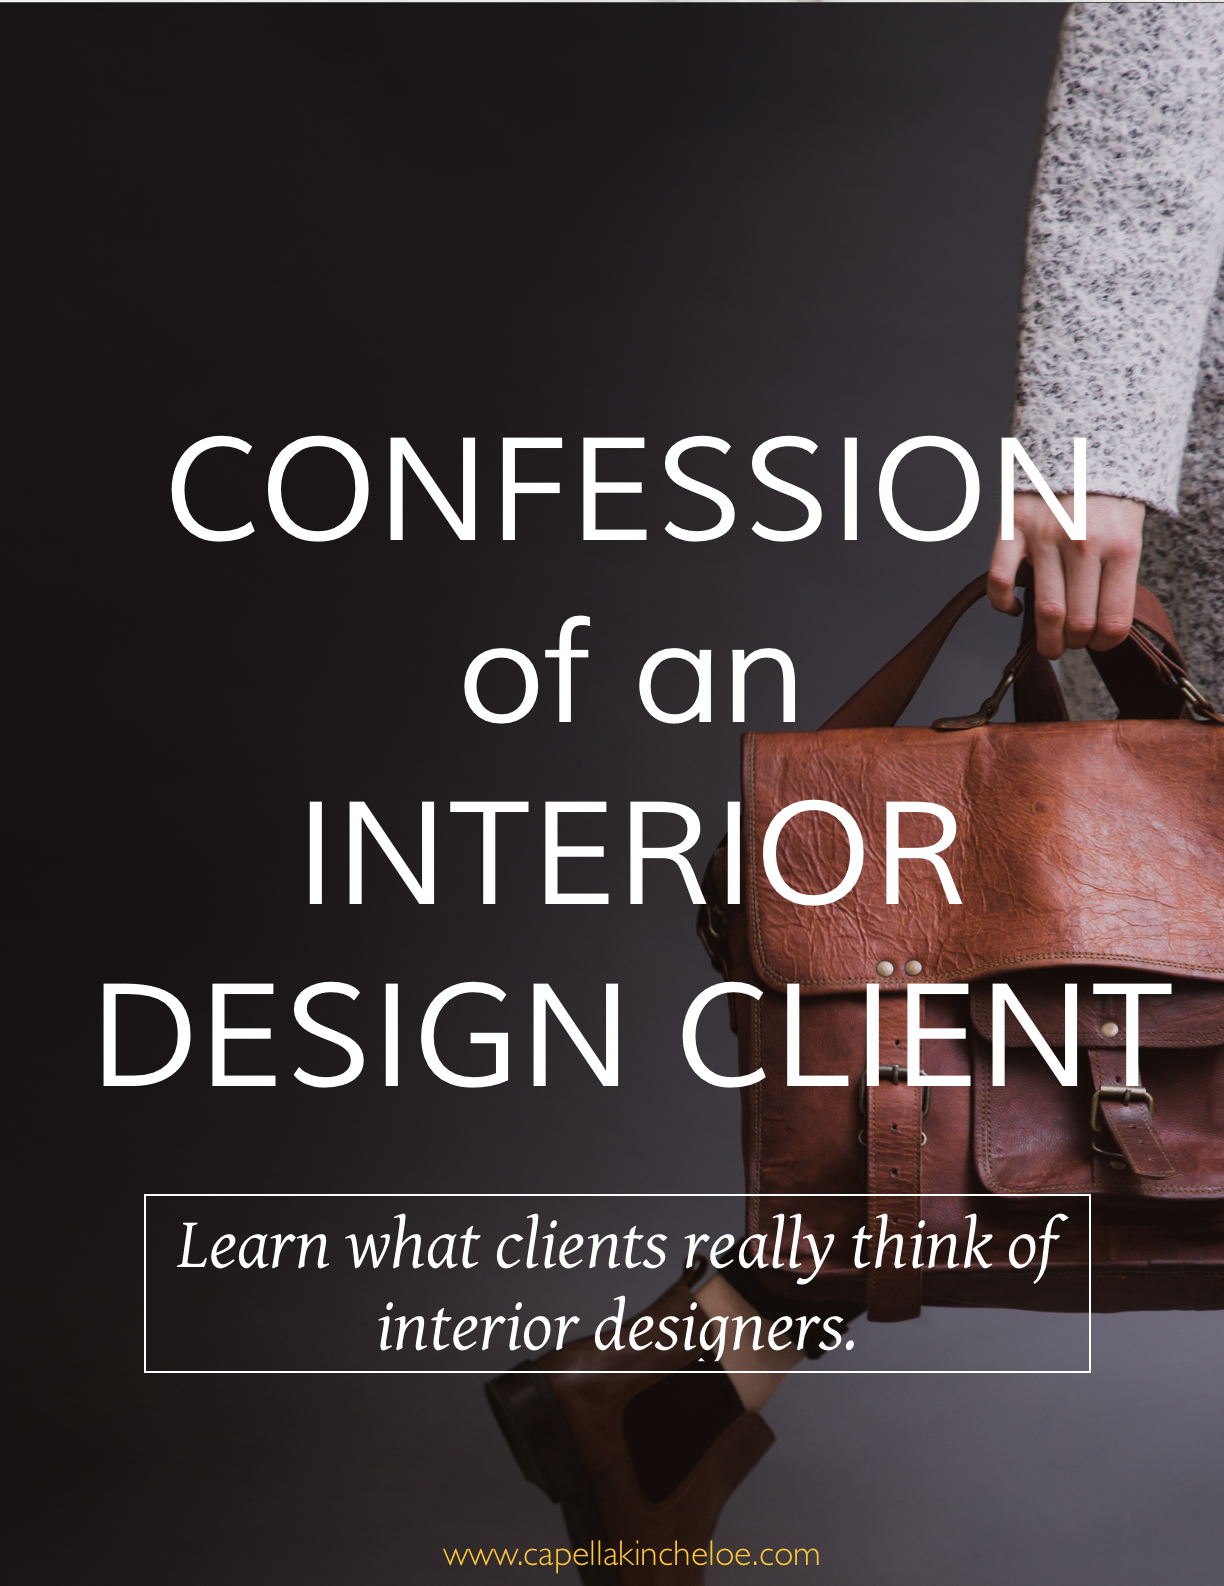 What clients really think of their interior designer